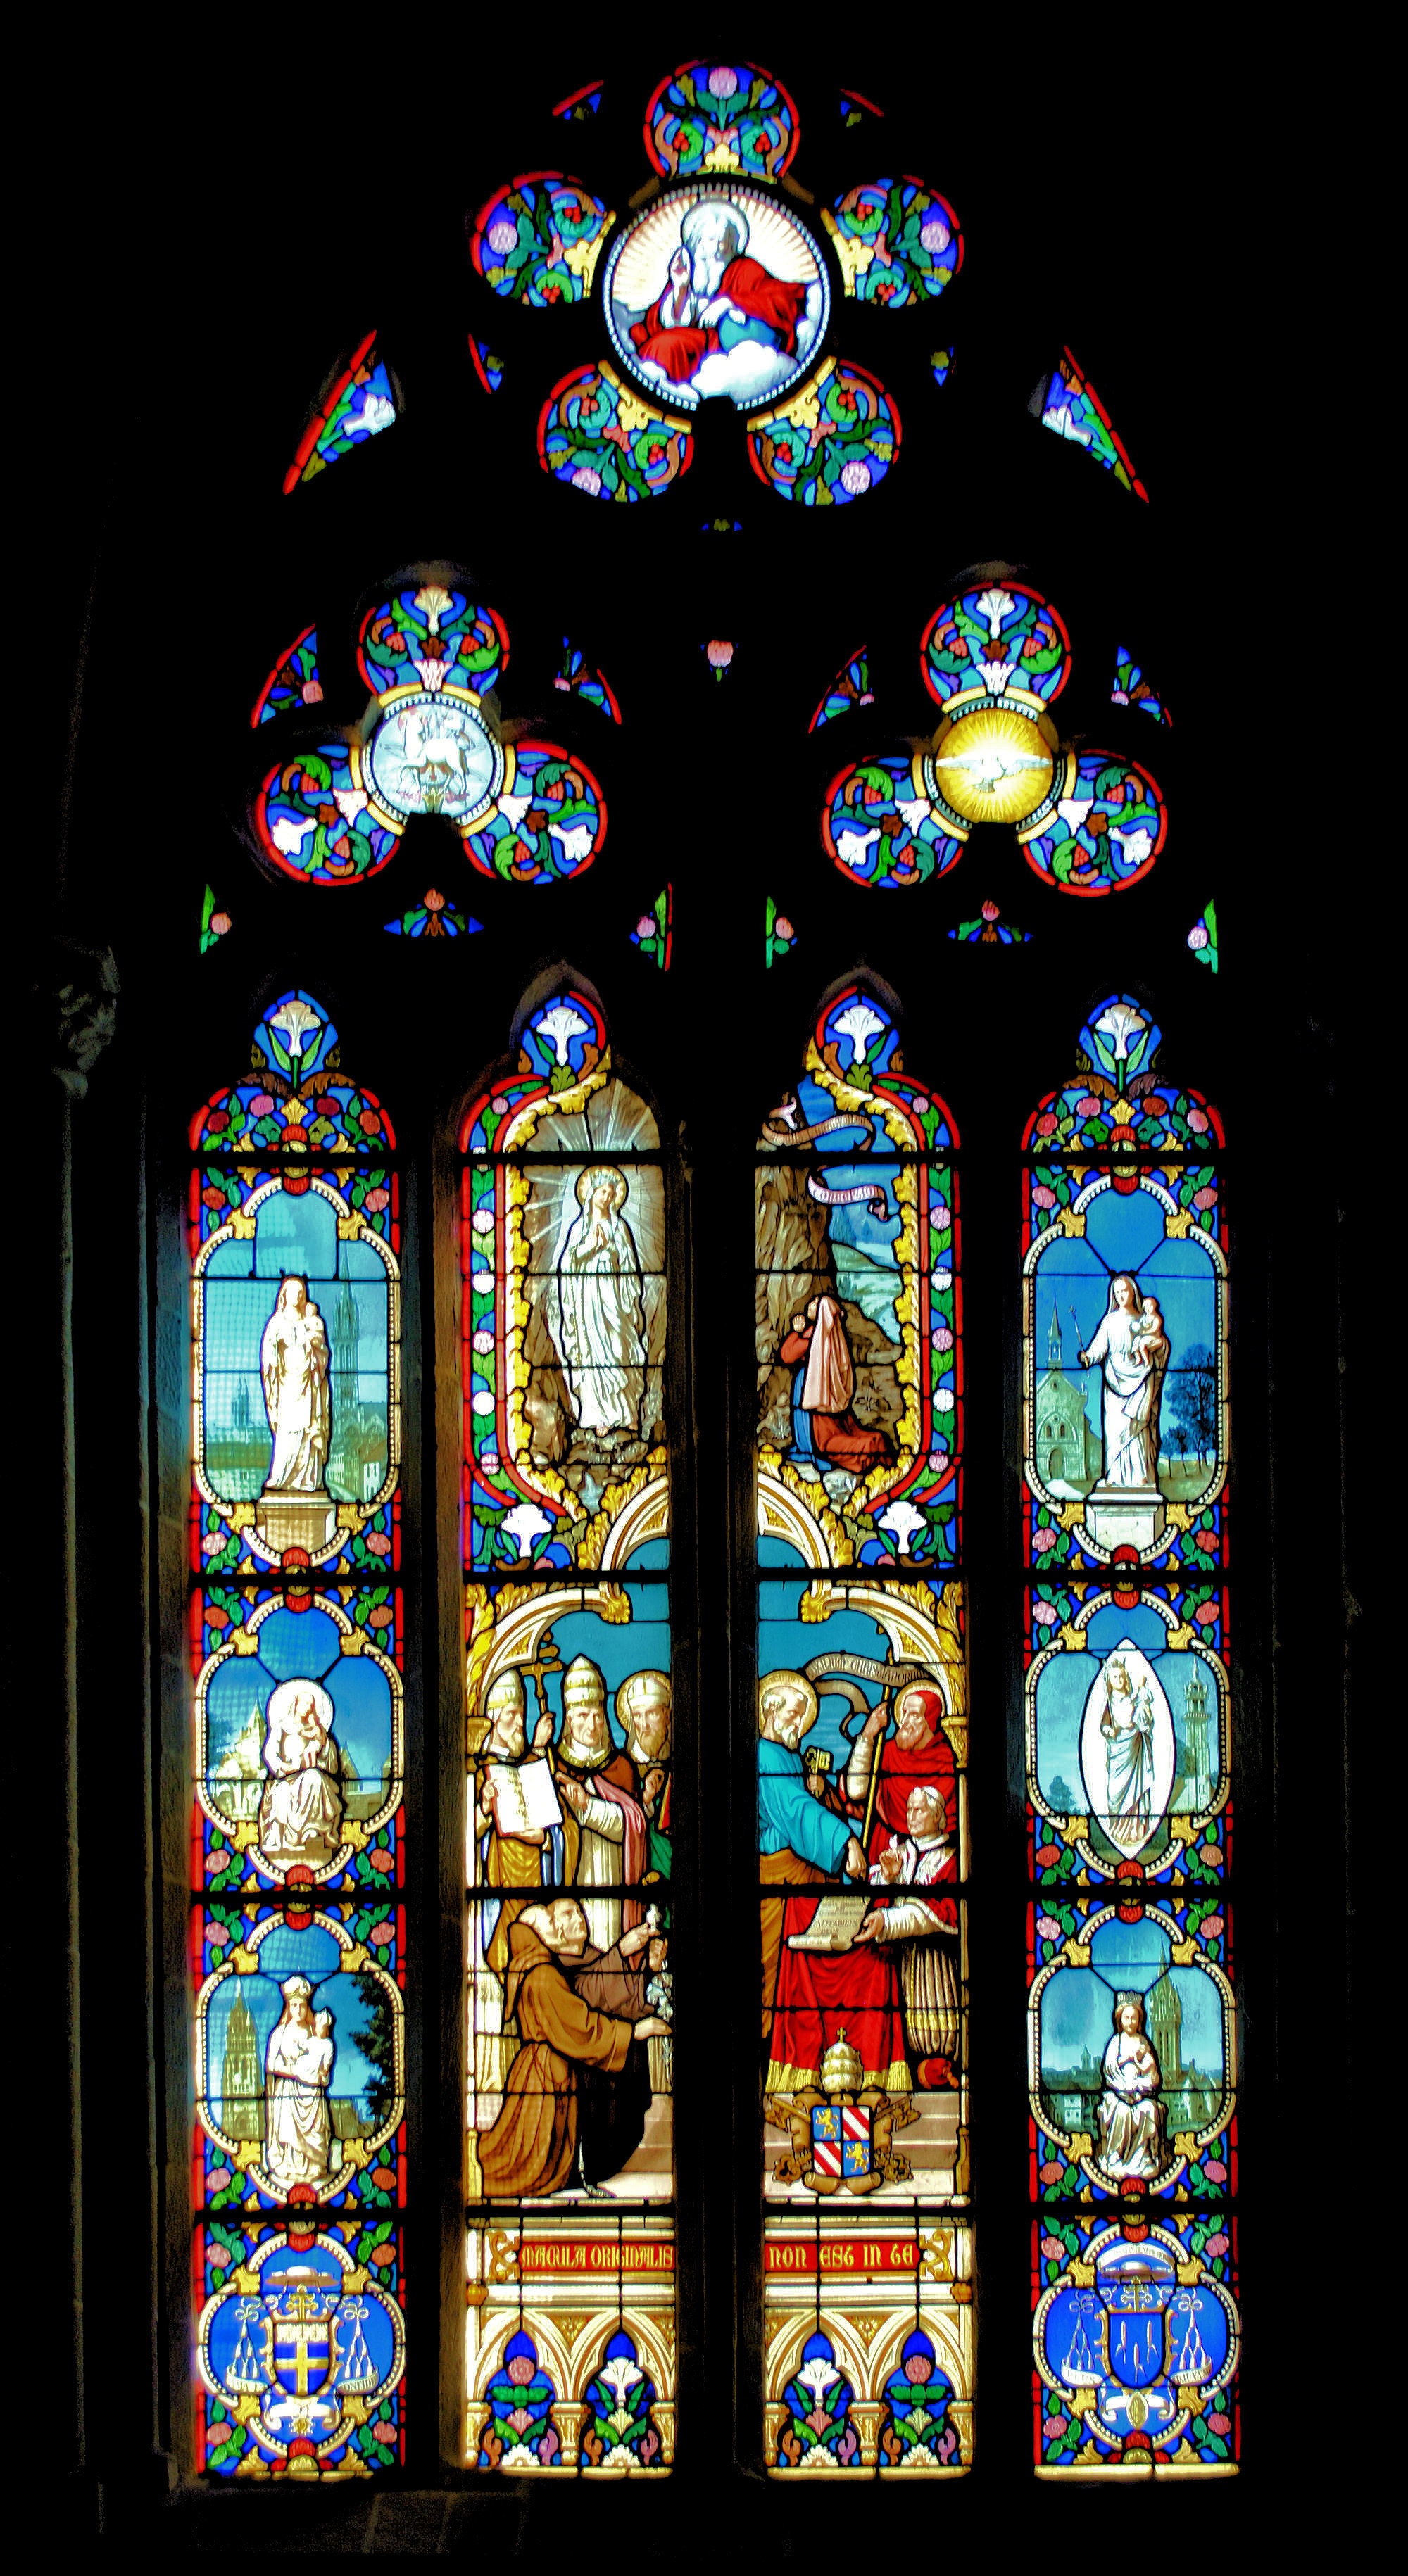 Vitrail - Stained glass window 11